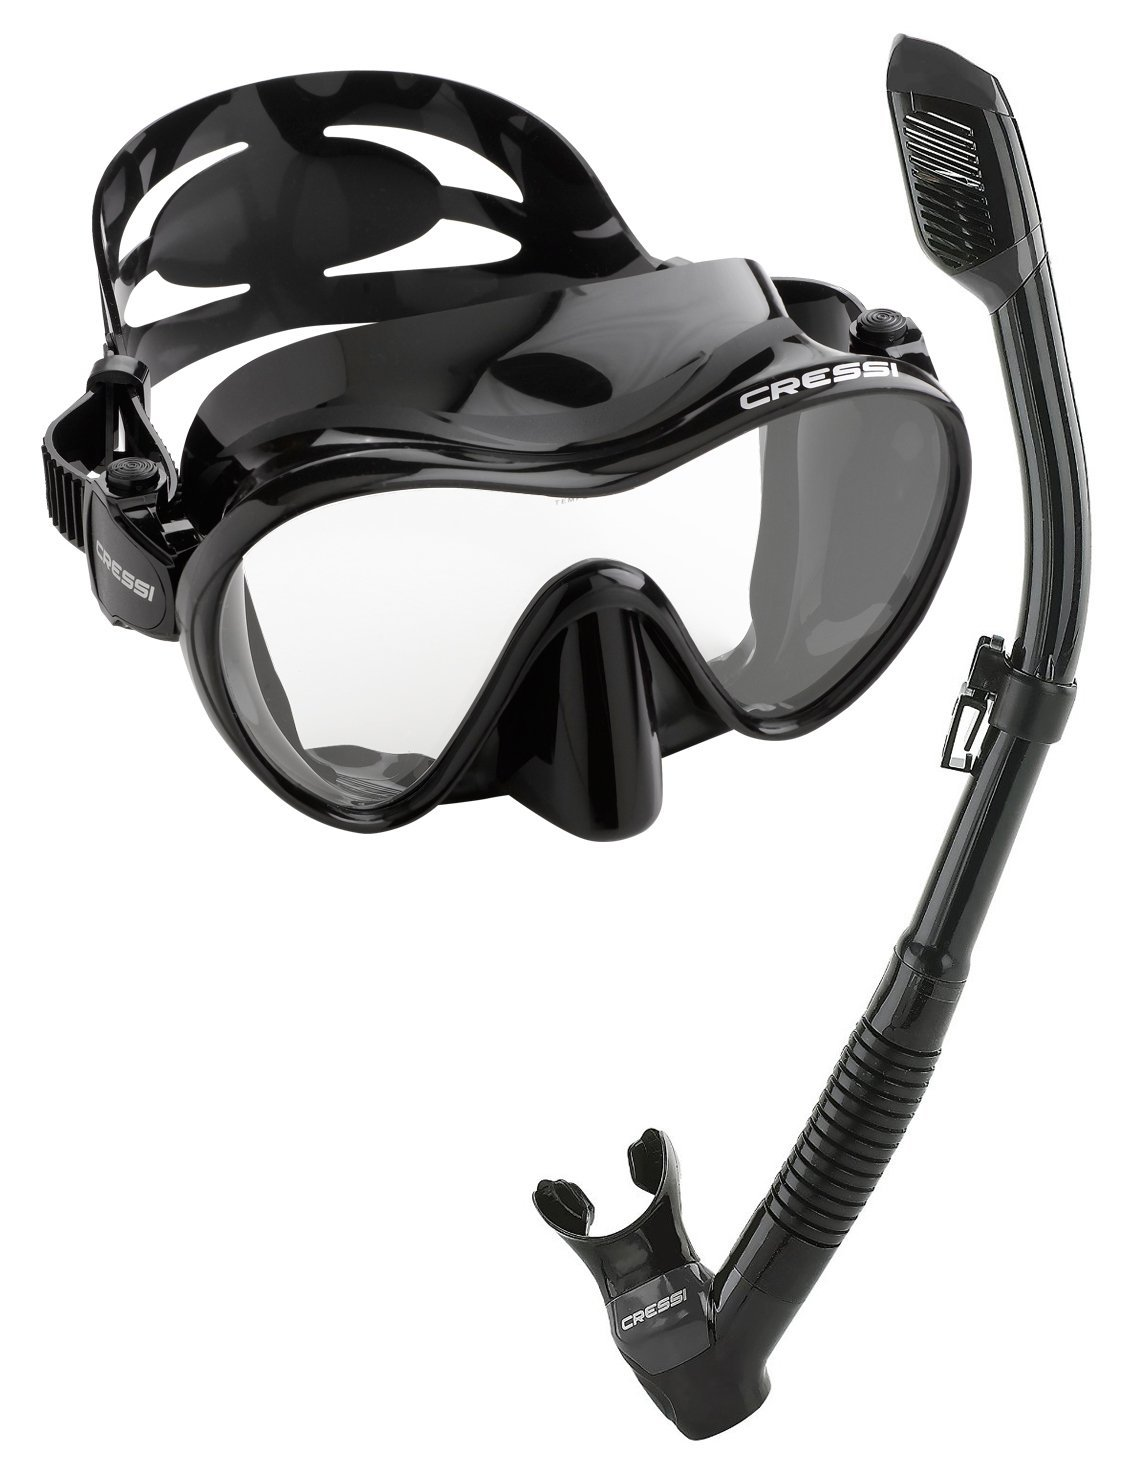 10. Cressi Scuba Diving Snorkeling Mask Set